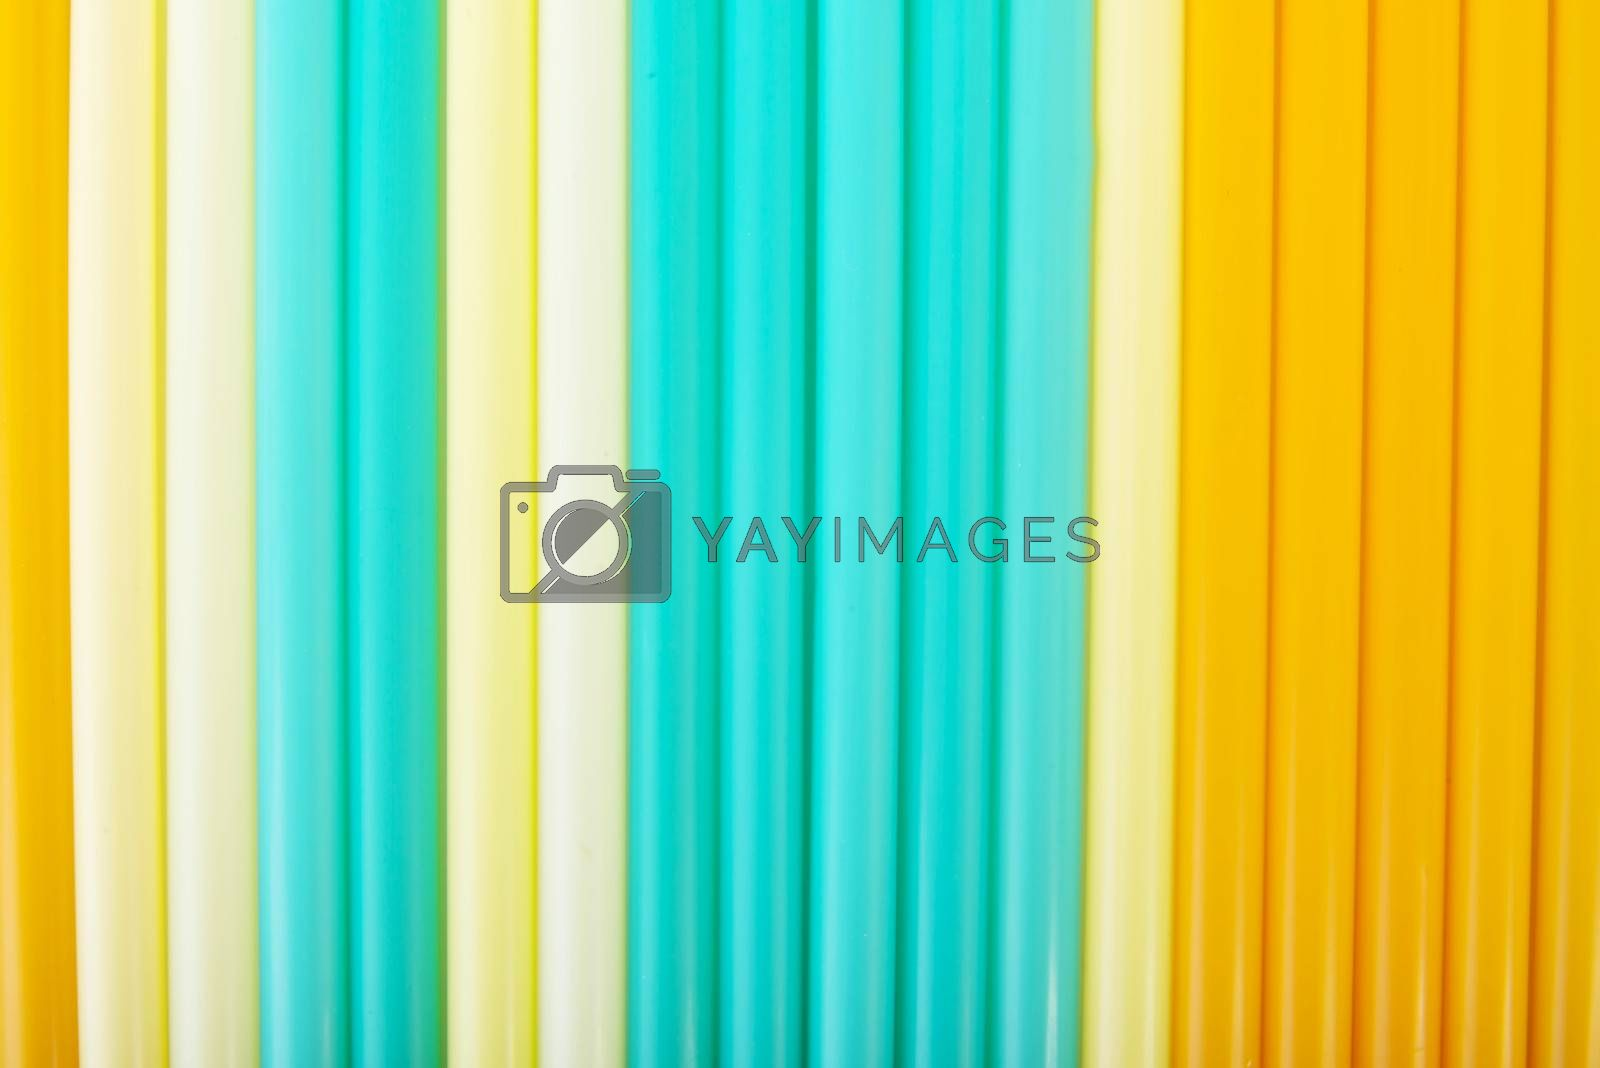 Royalty free image of Composition of colorful straws. by BDS